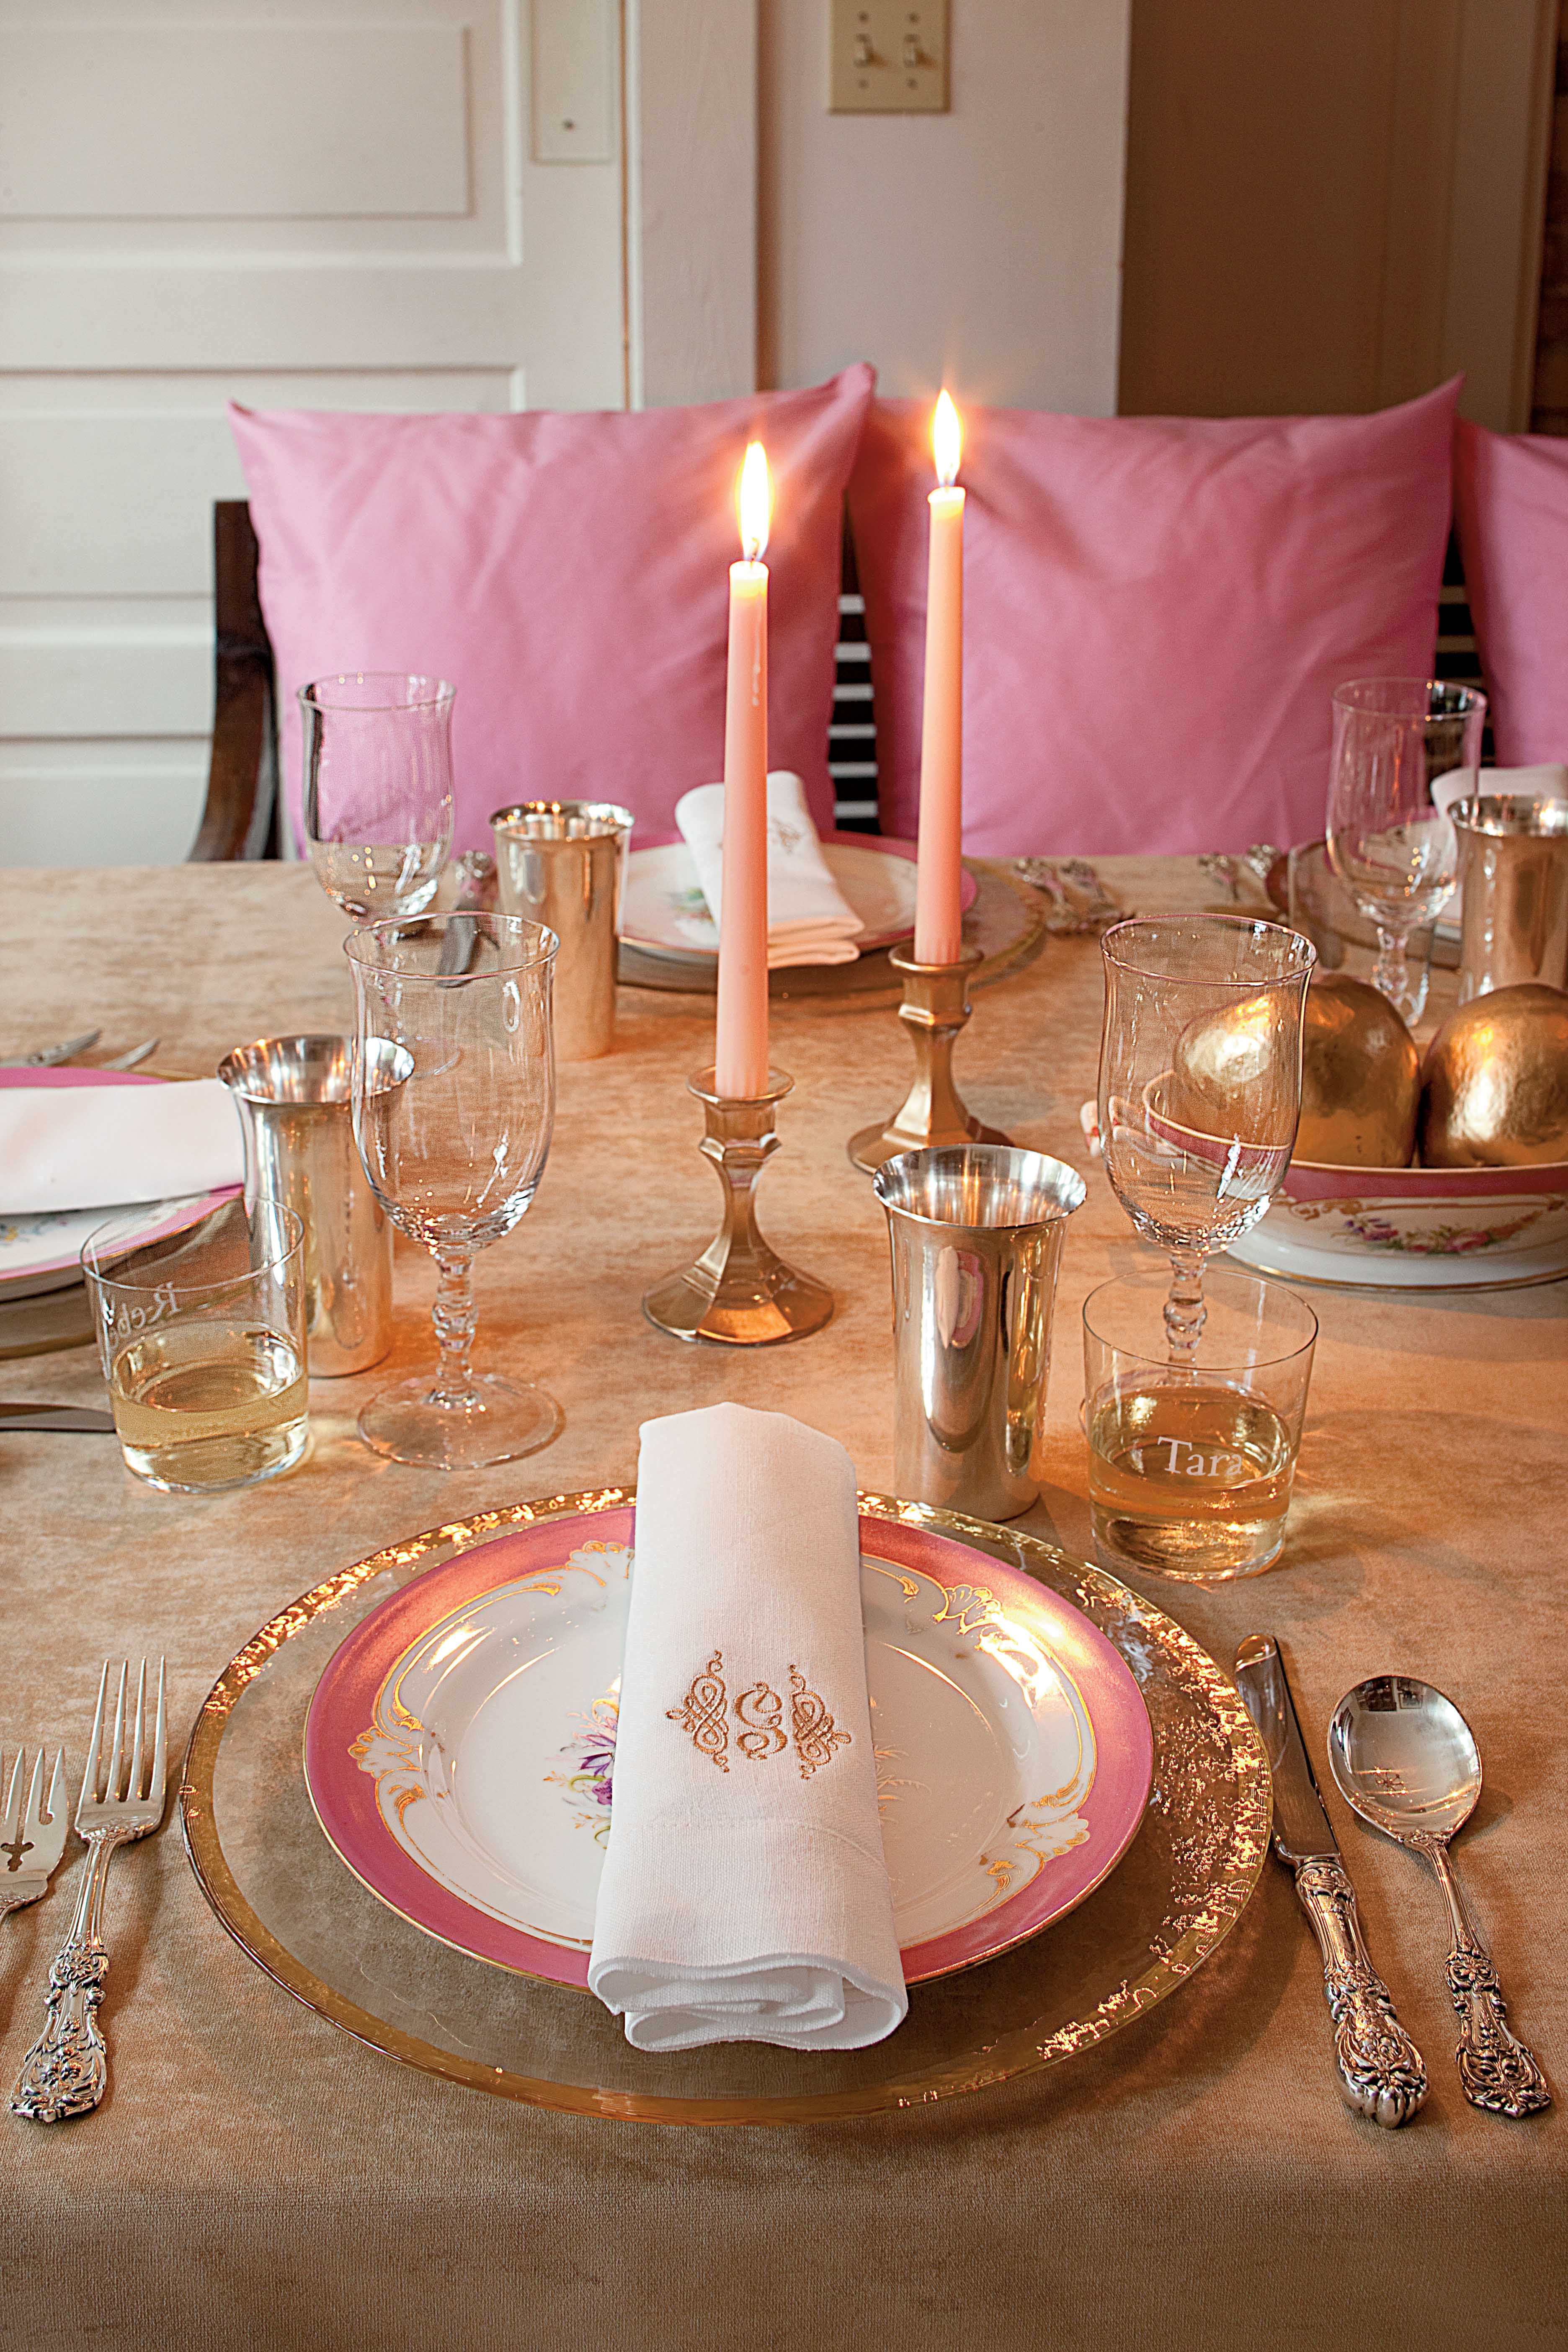 Pink pillows and pink and gold table setting